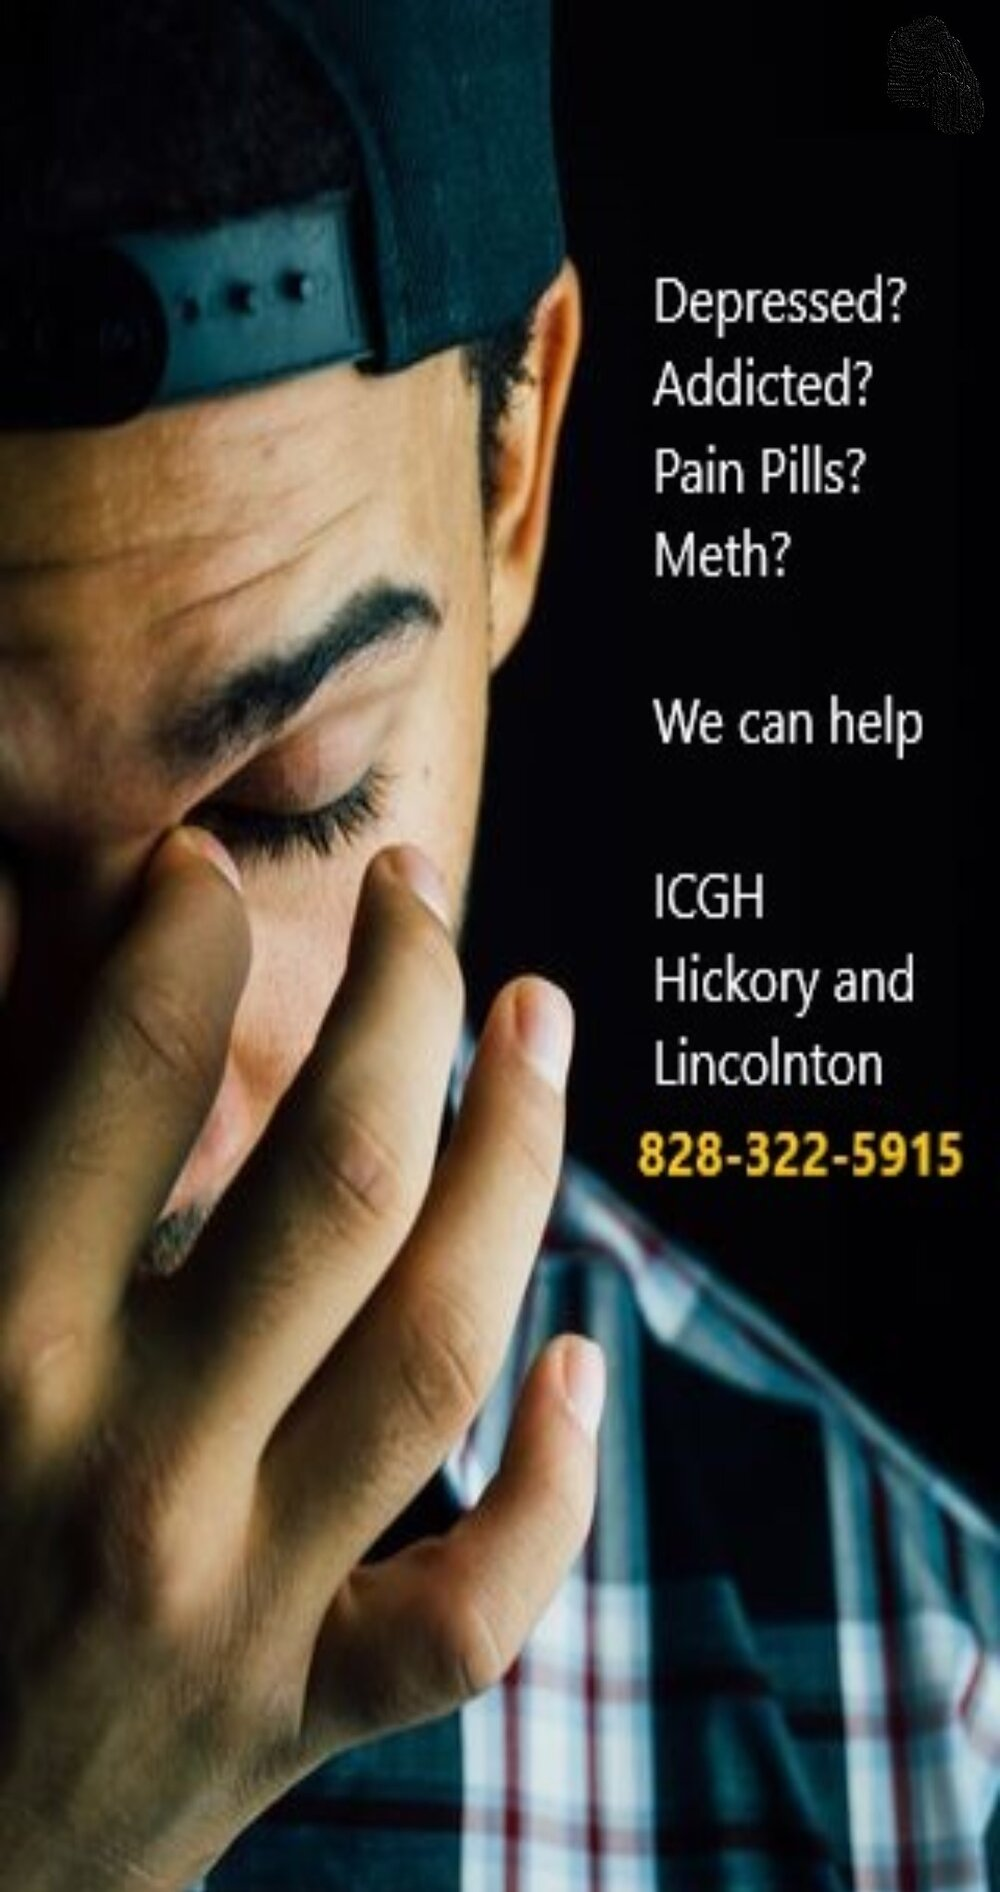 Depressed? Growing Anxiety? Has life lost purpose? Drugs or alcohol becoming a problem to help cope? Feeling lost?  You don't have to get through this alone.... Call INTEGRATED CARE OF GREATER HICKORY today for help: 828-322-5915, ext 220. HICKORY -LINCOLNTON - GASTONIA - DOBSON LOCATIONS.